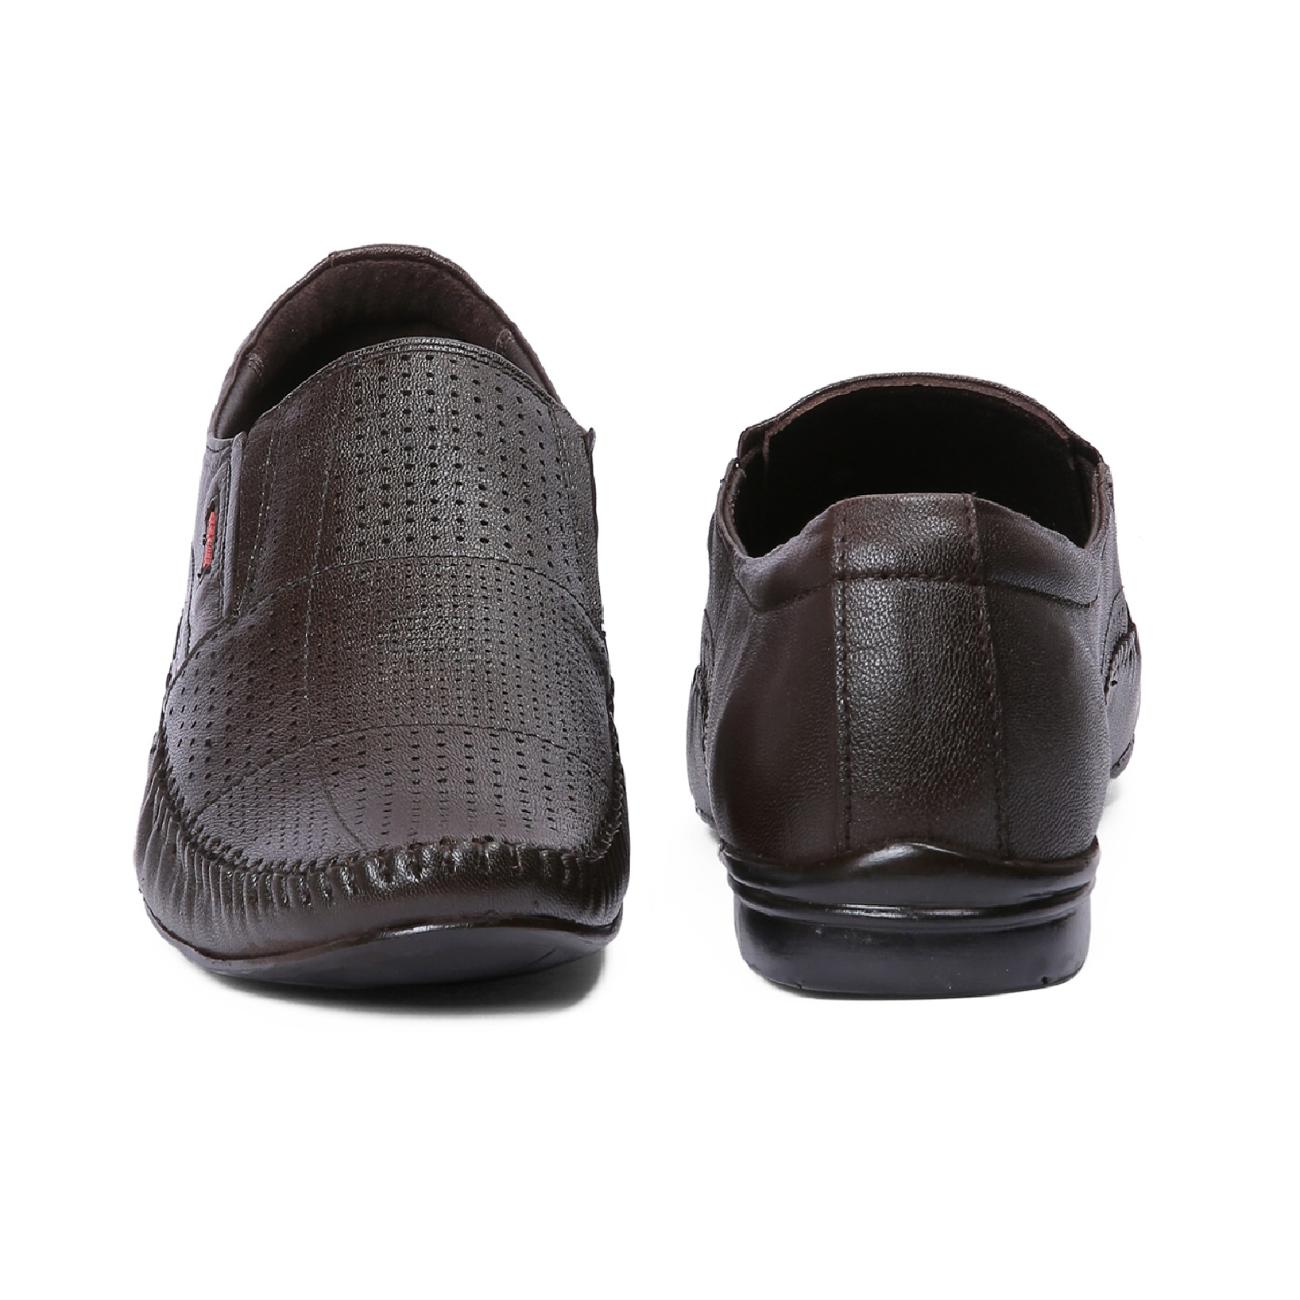 brown leather slip-on formal shoes top view